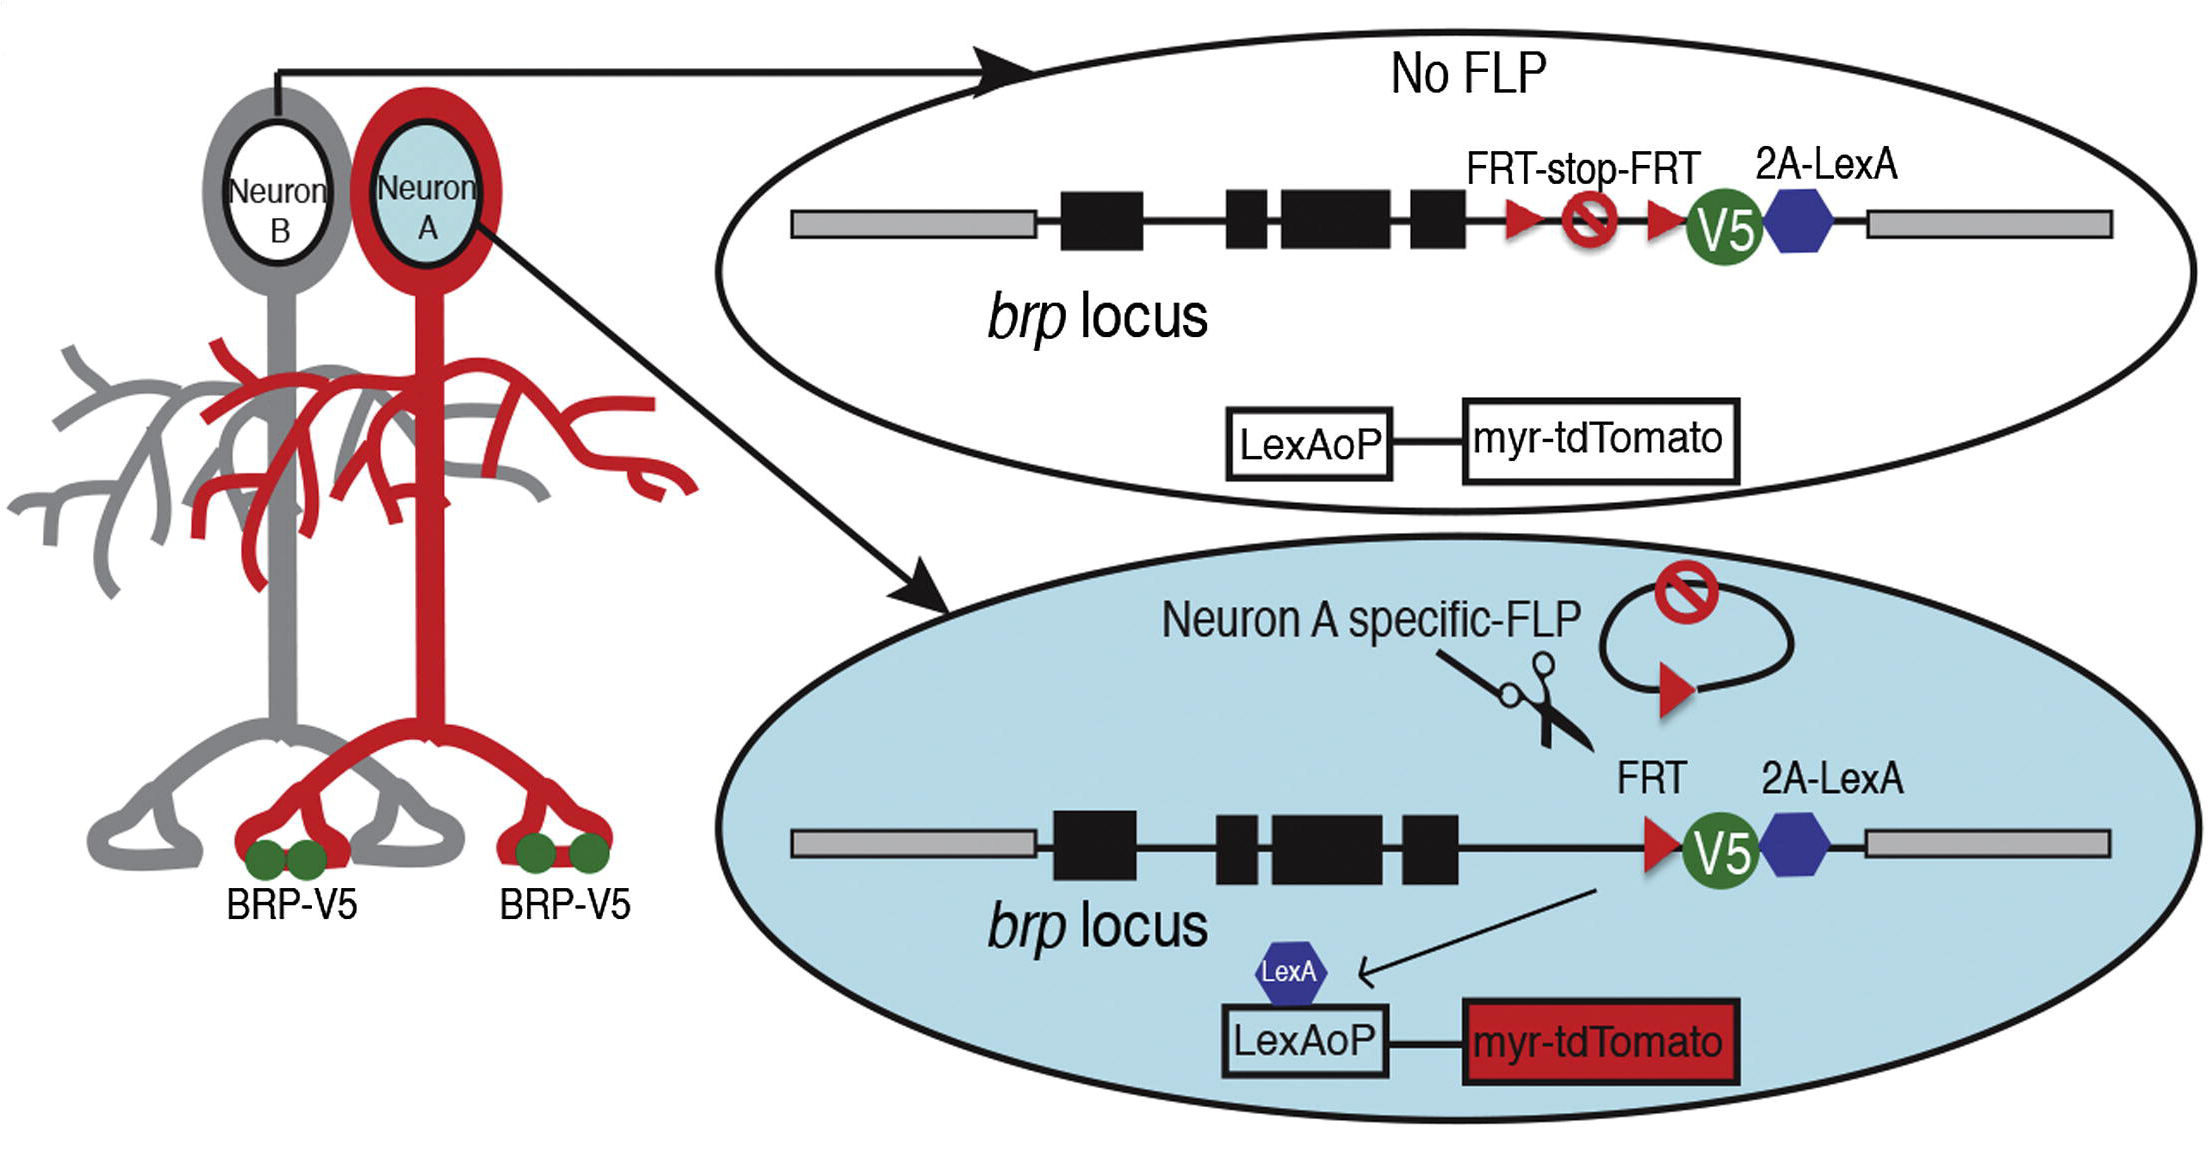 Figure of STaR presynaptic marking from Chen et al. (2013), Cell-type-Specific Labeling of Synapses In Vivo through Synaptic Tagging with Recombination. Neuron 81: 280–293.